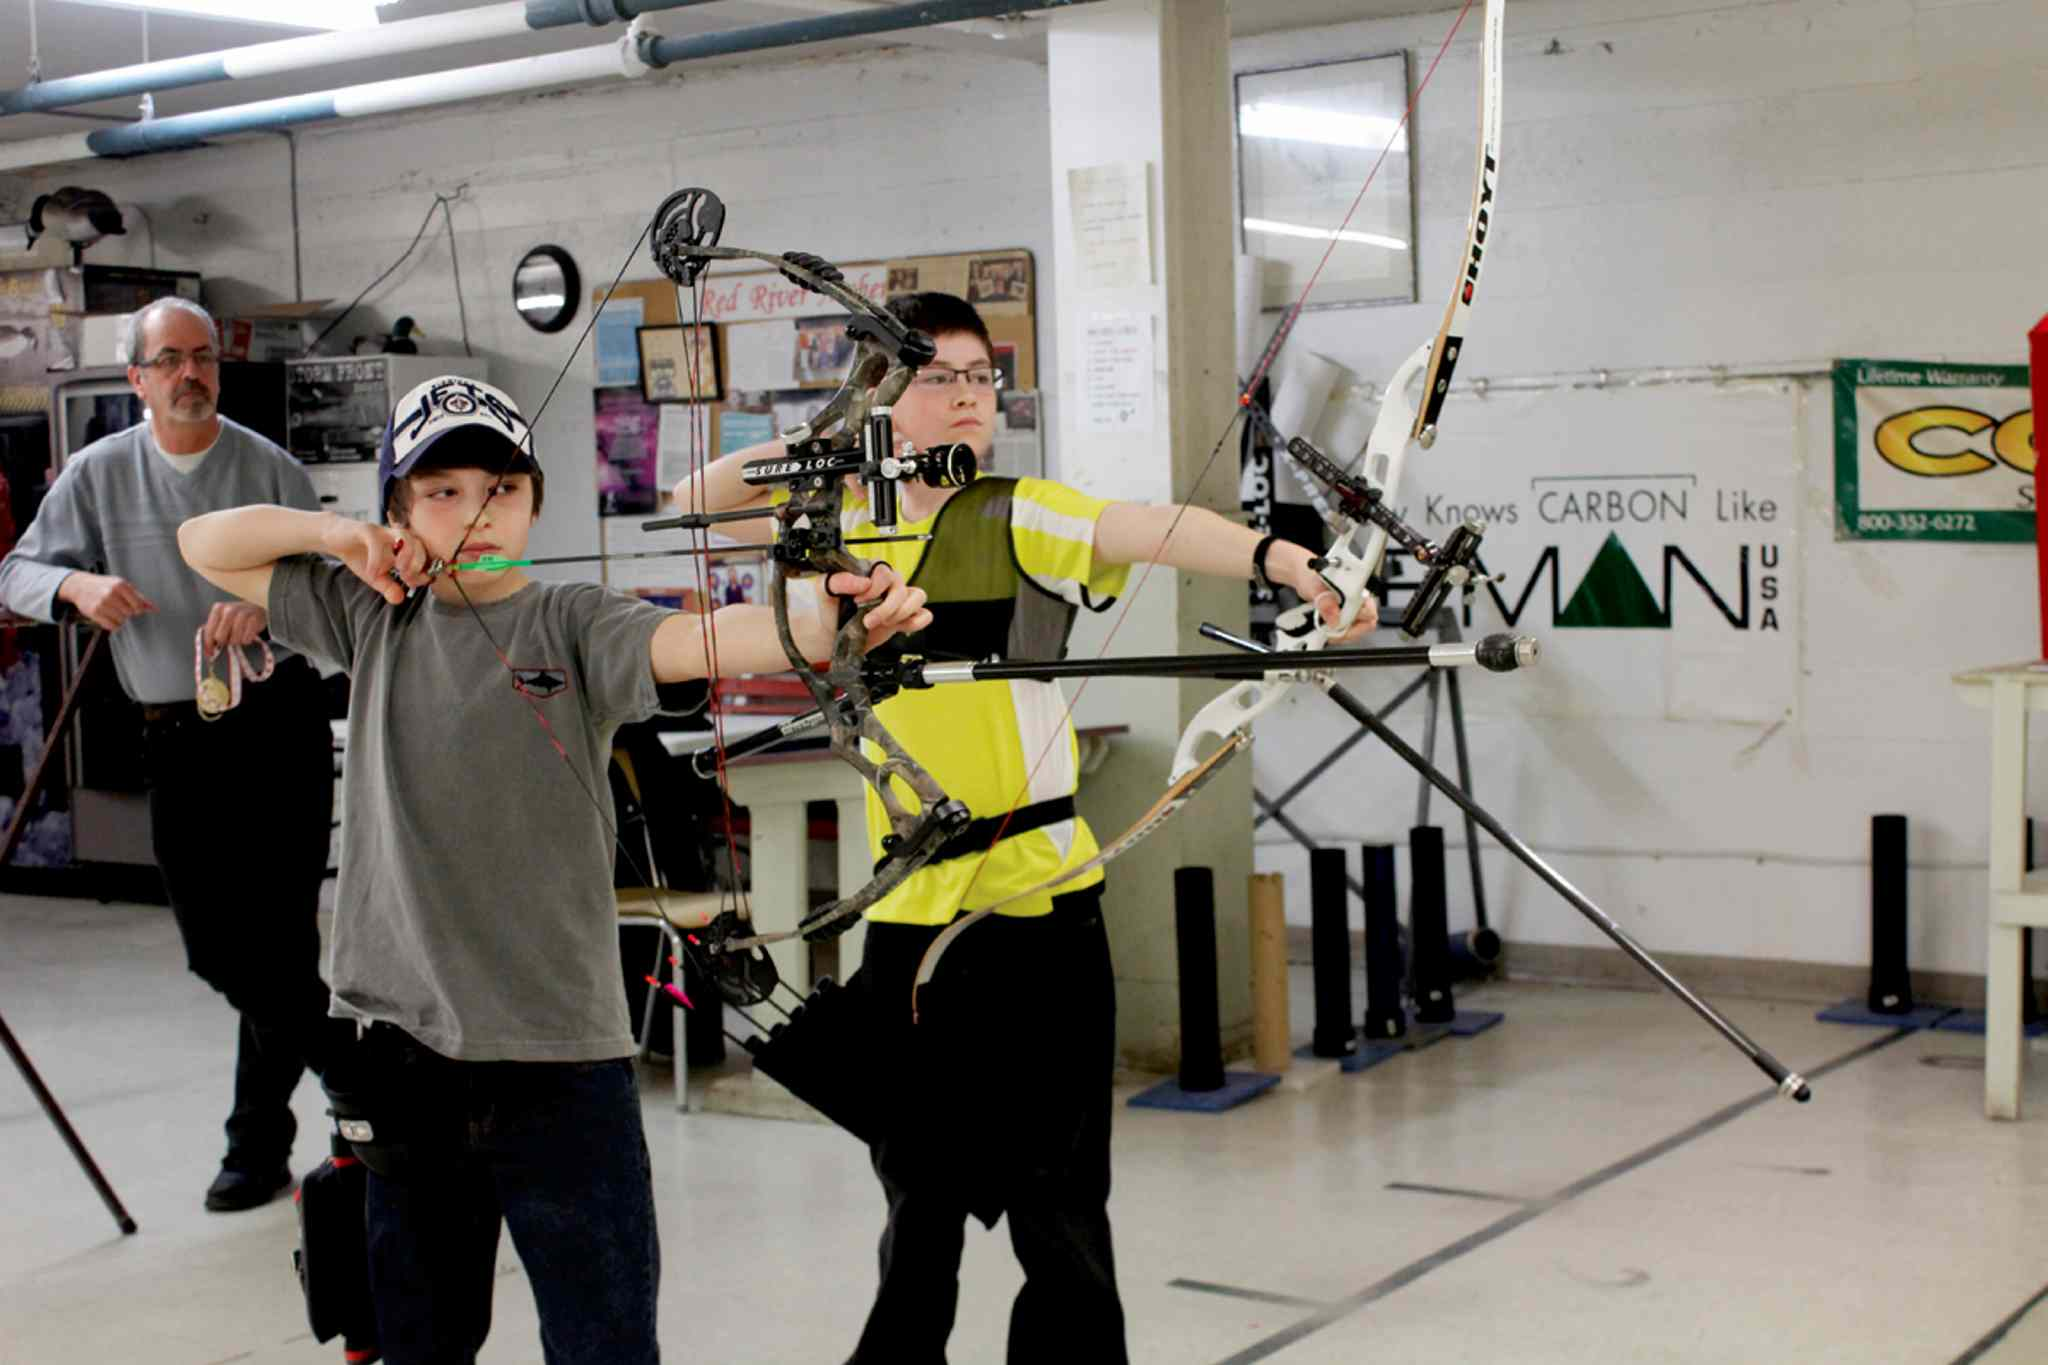 Robbie Comberbach (left) shoots with a compound bow while his friend and fellow archer Riel Lewer (right) shoots with a recurve bow.